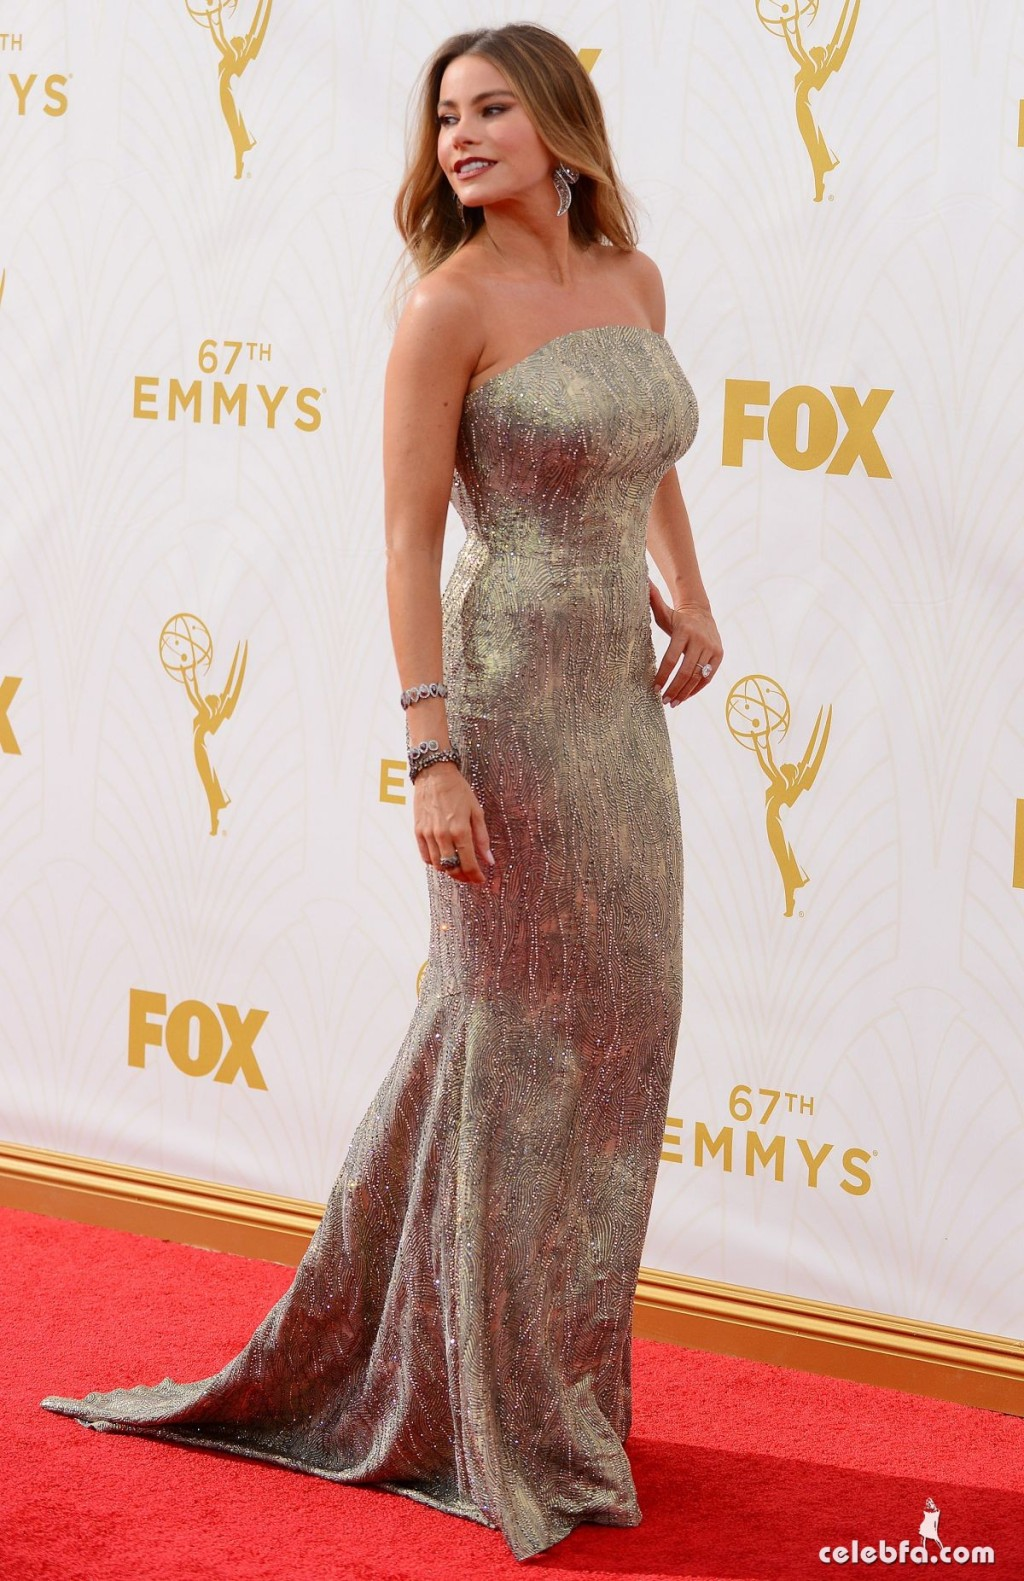 sofia-vergara-at-2015-emmy-awards (6)